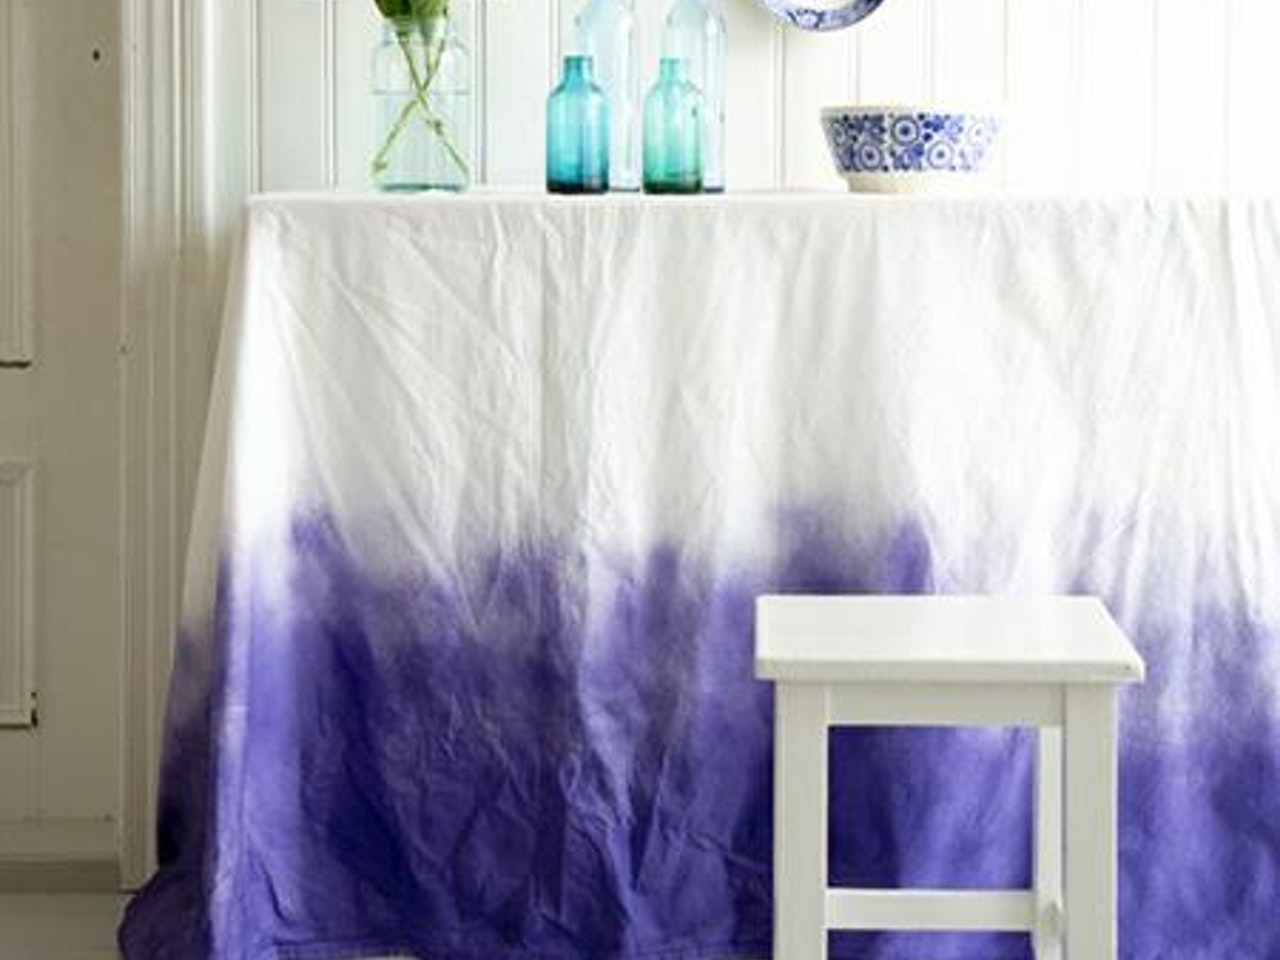 Ombre effect in interiors